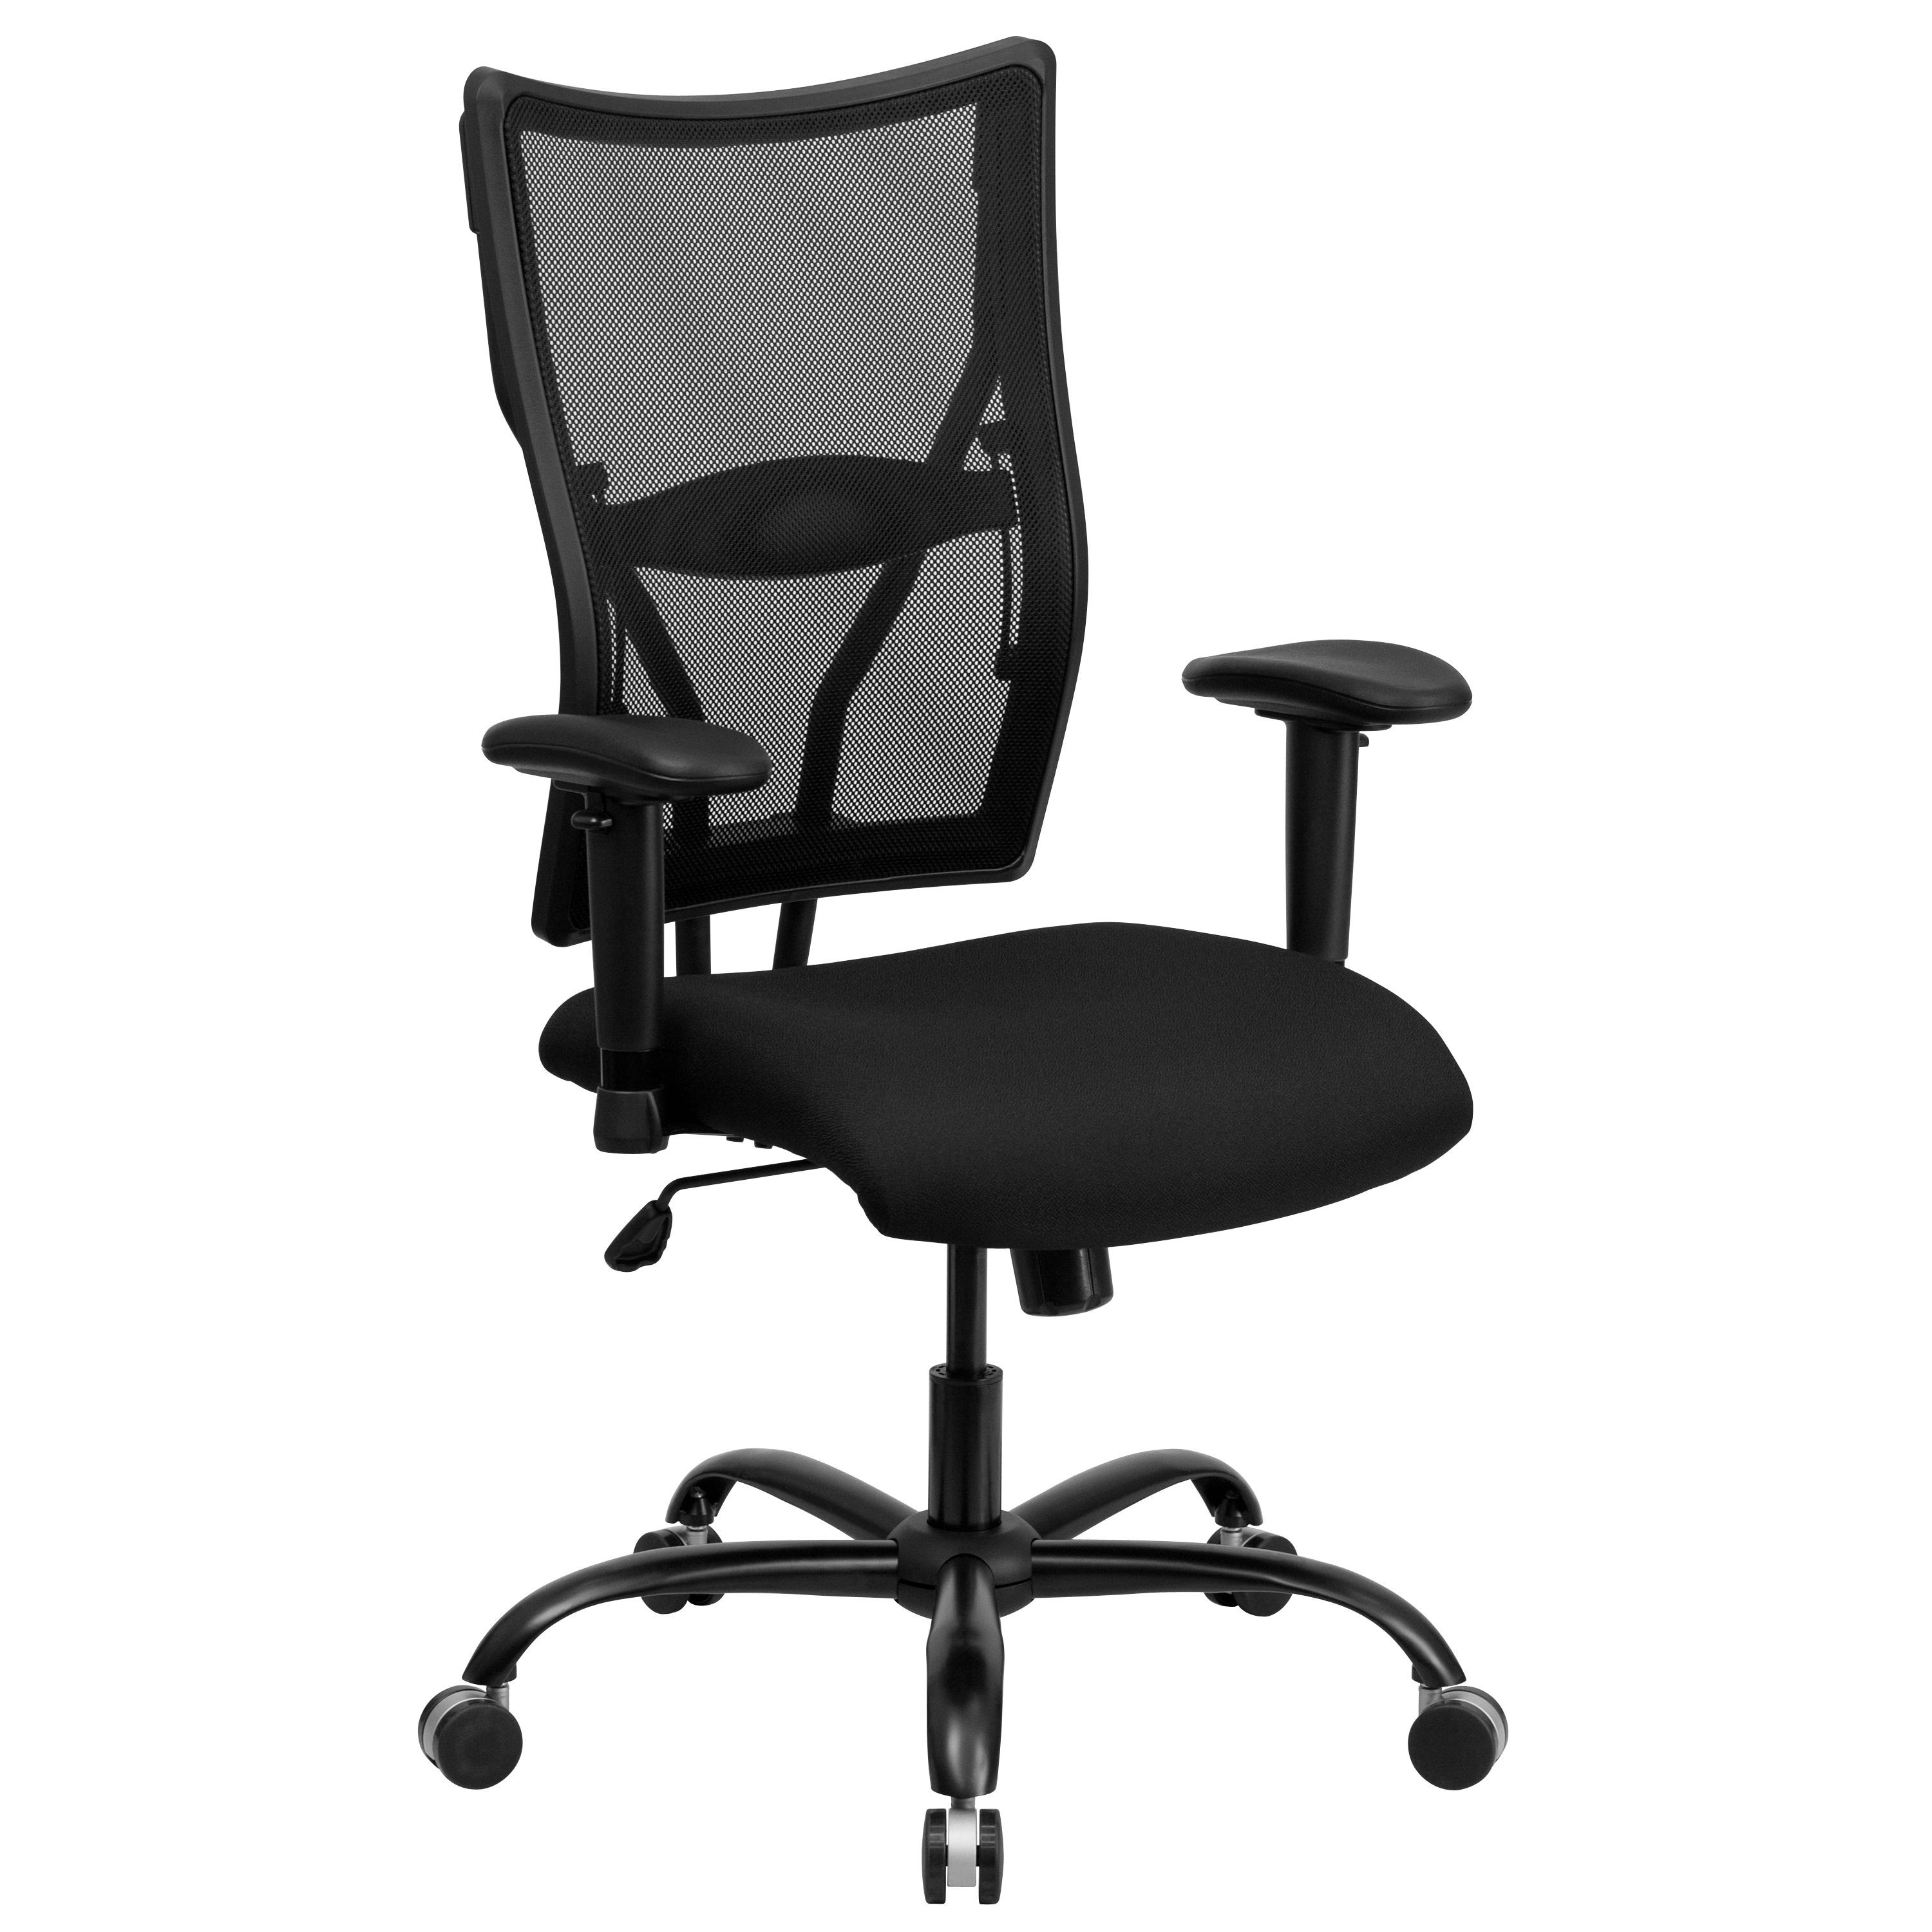 Flash Furniture WL-5029SYG-A-GG HERCULES Series 400 Lb. Capacity Big & Tall Black Mesh Office Chair with Arms